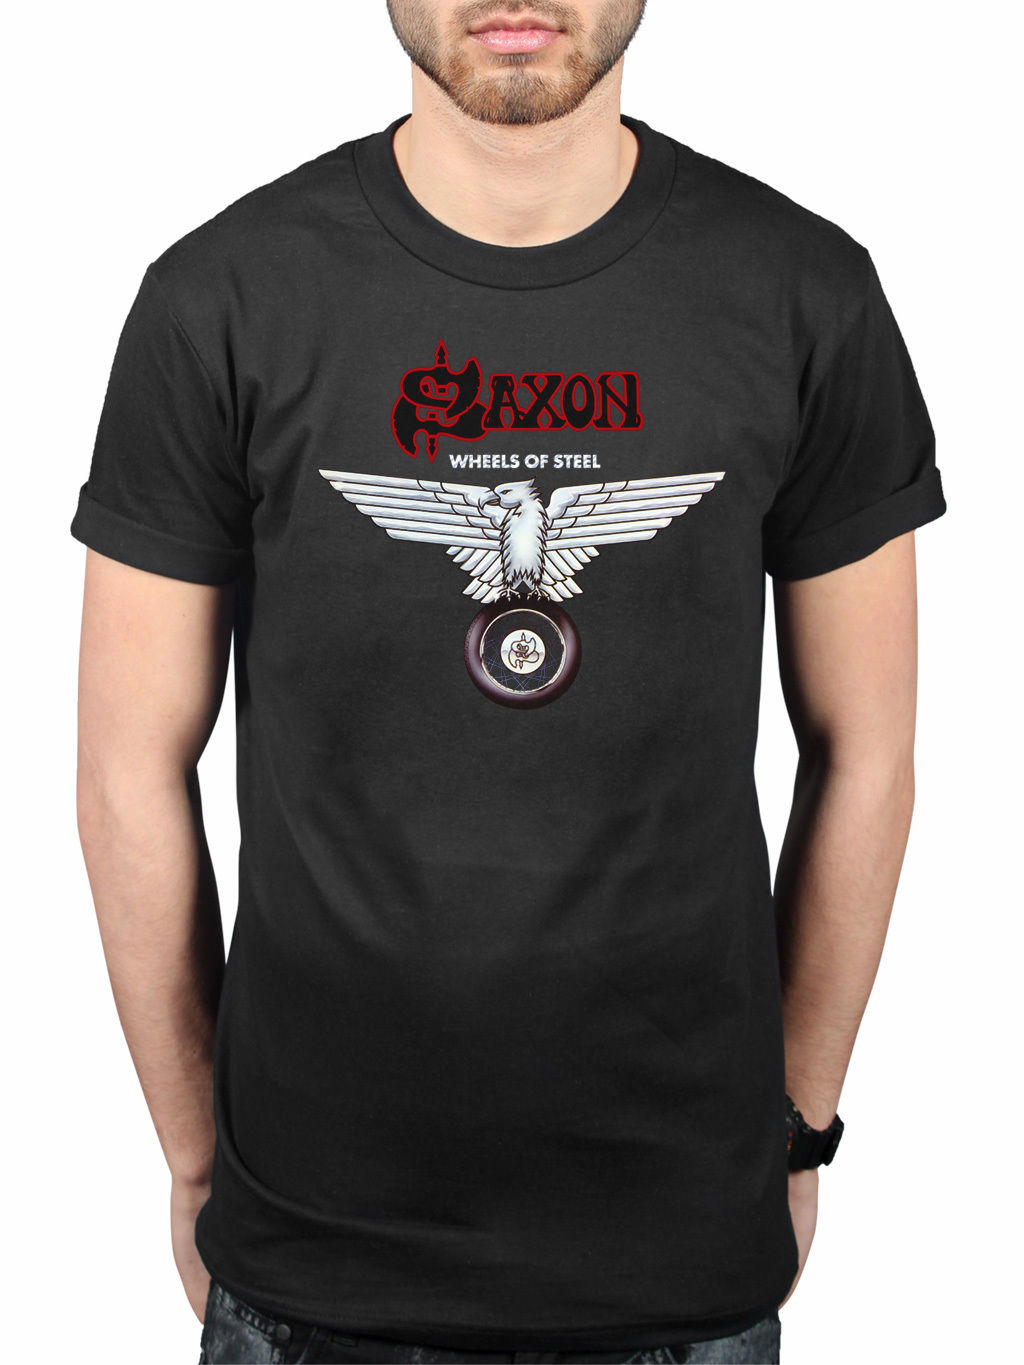 Male Best Selling T Shirt Official Saxon Wheels Of Steel T-Shirt Heavy Metal Band Merchandise